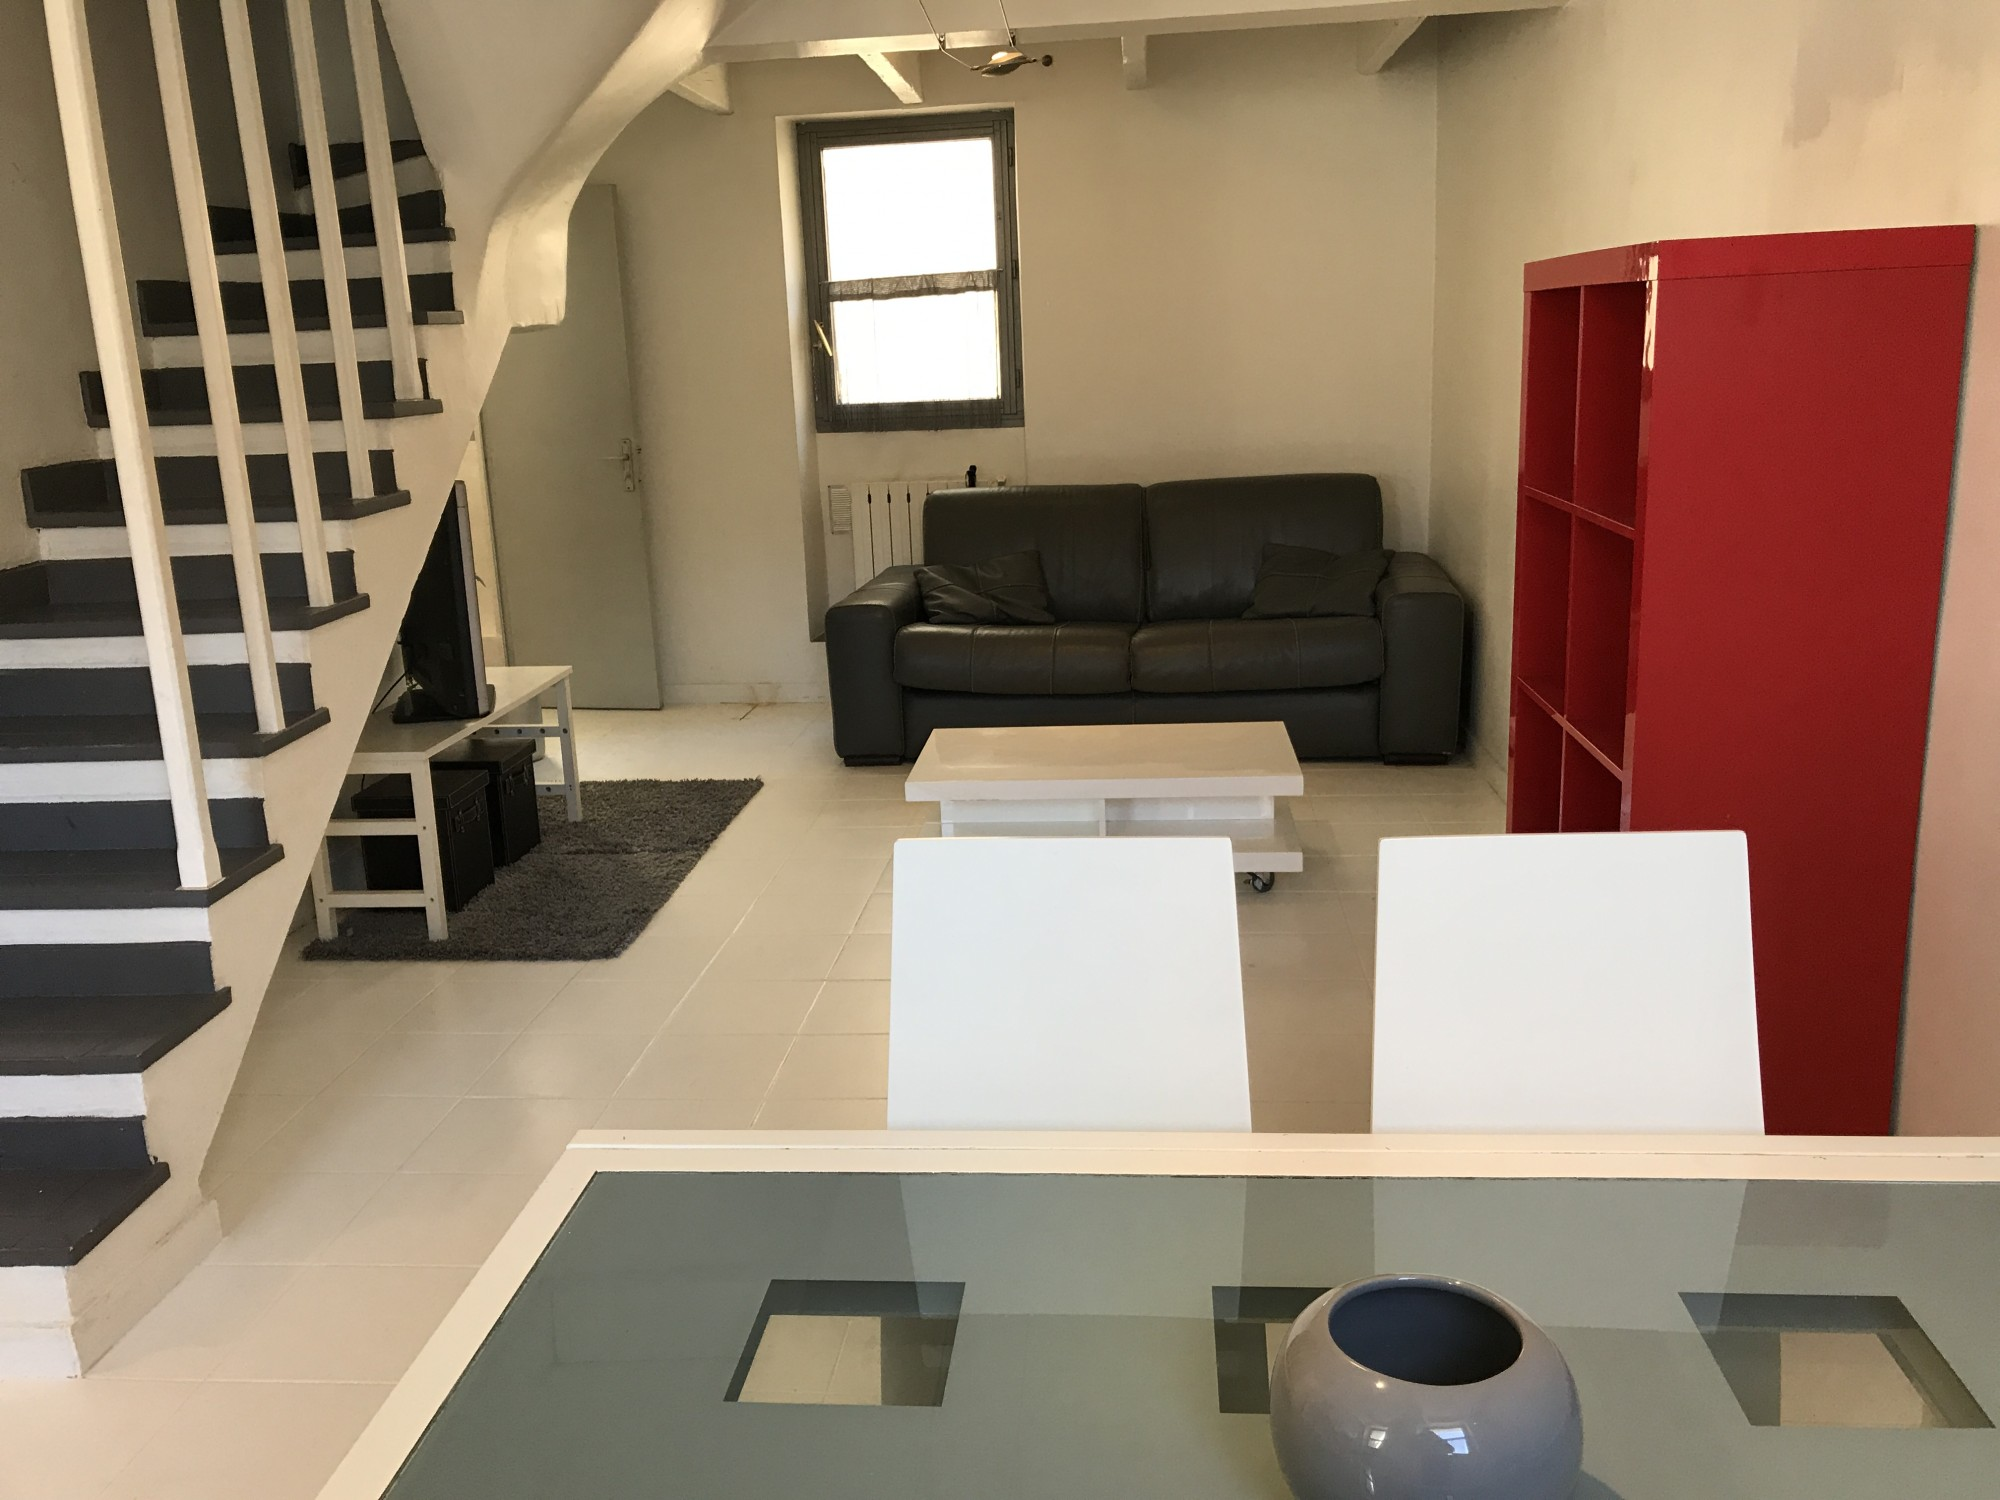 Ventes appartement t2 3 f2 3 13007 quartier st lambert for Appartement terrasse 13007